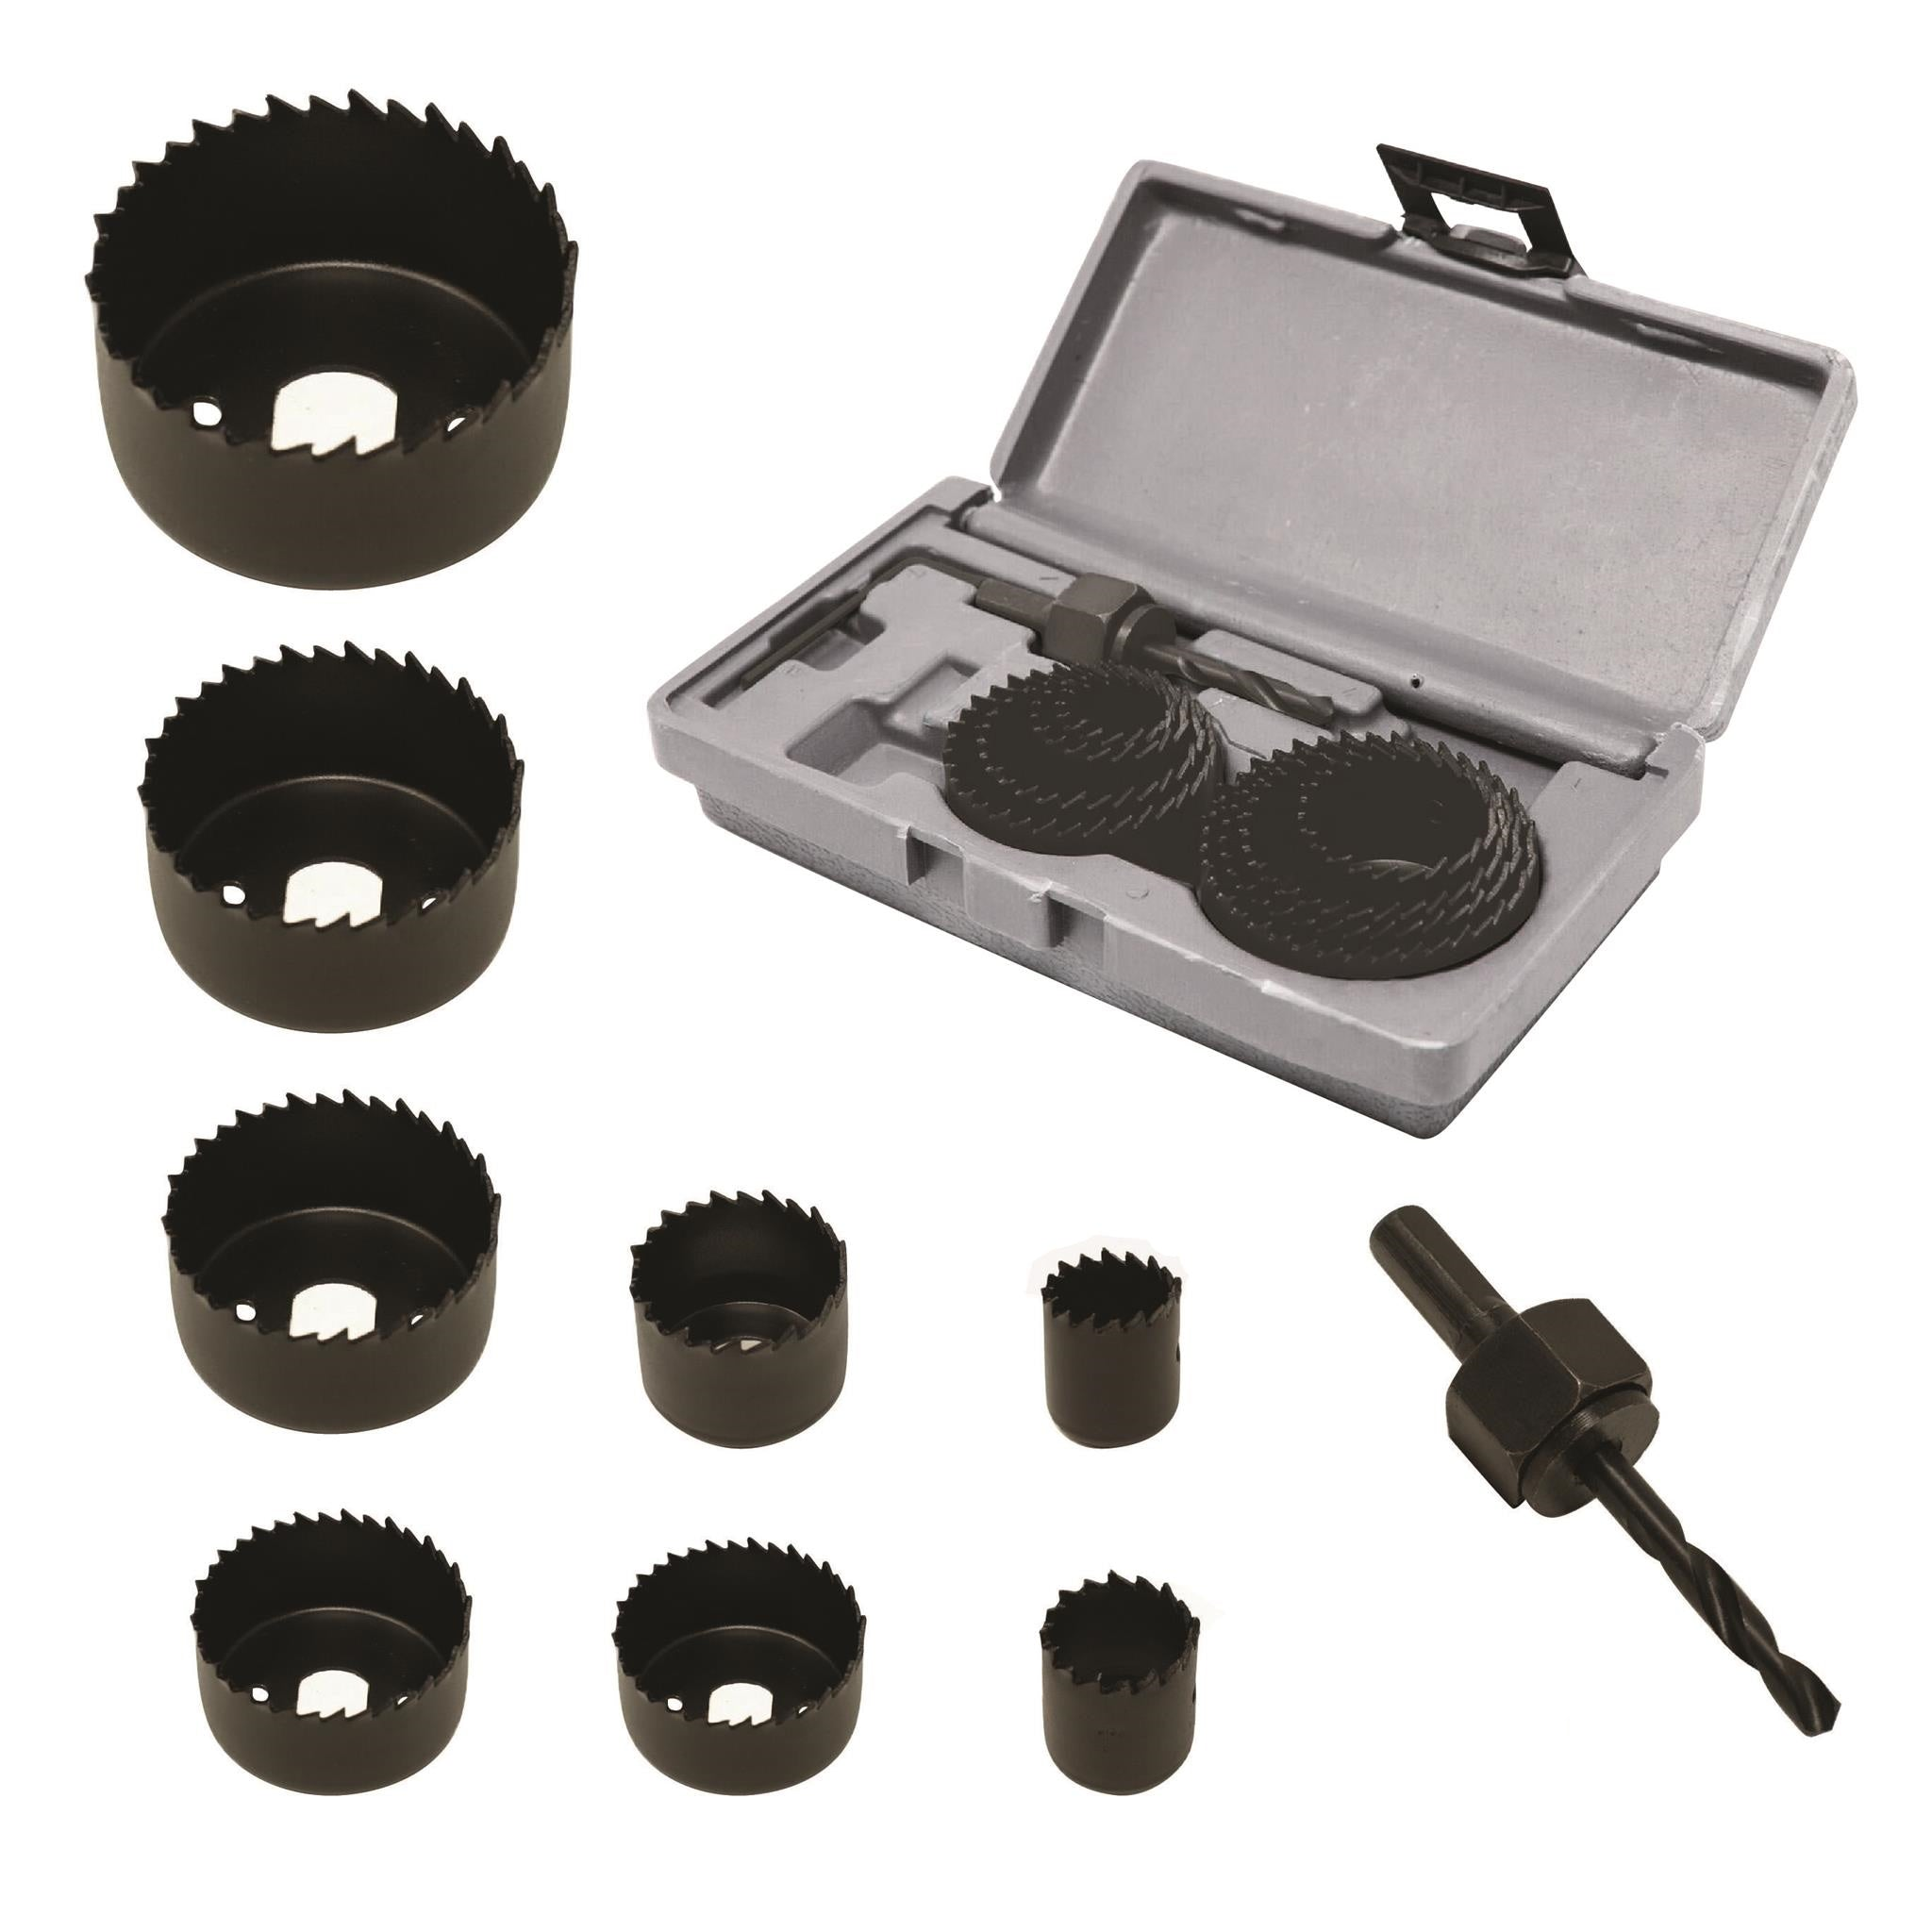 caseypowell - 10 Piece Hole Saw Kit - Hole Saw Kit - Ryker Hardware